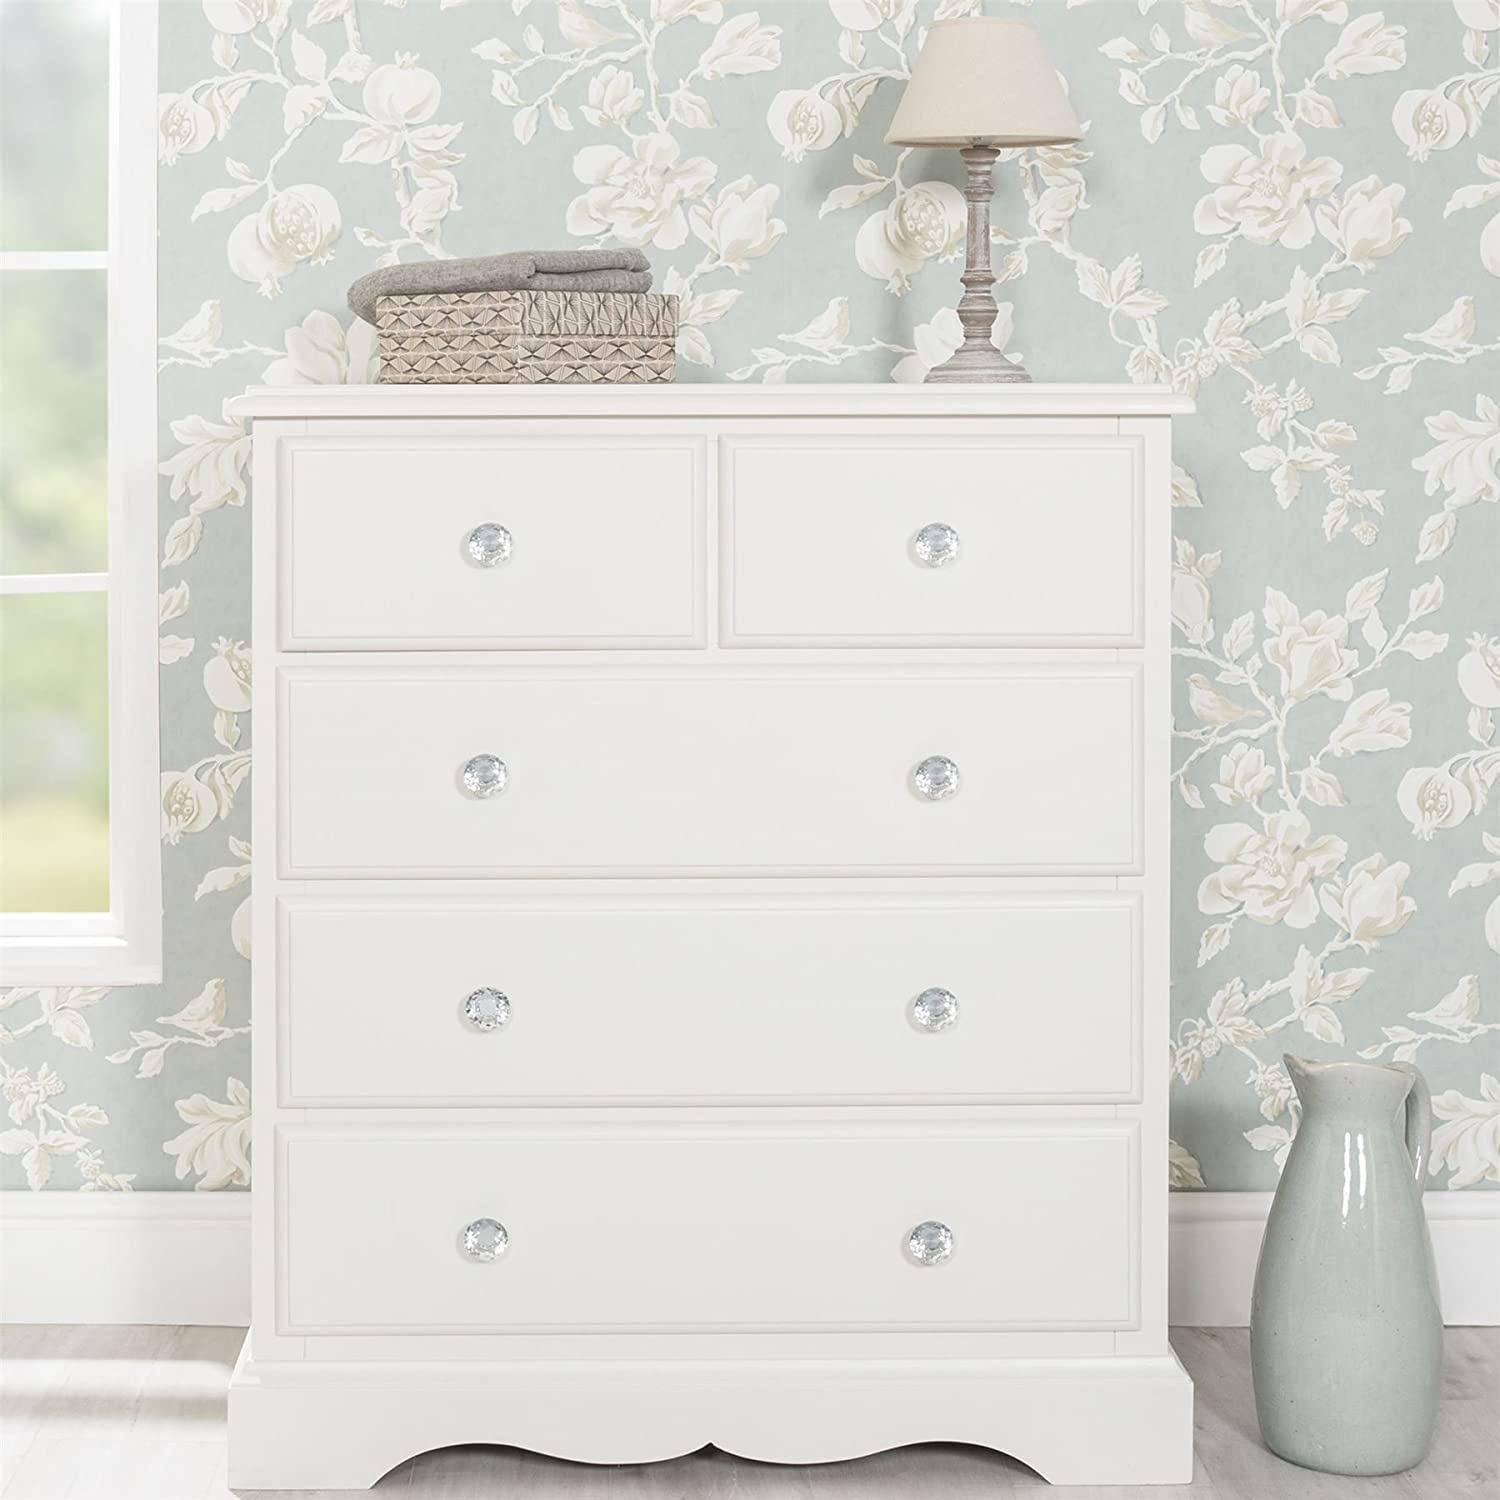 Romance Large chest of drawers with crystal handles. 2 over 3 French Chest of Drawers. FULLY ASSEMBLED Antique White